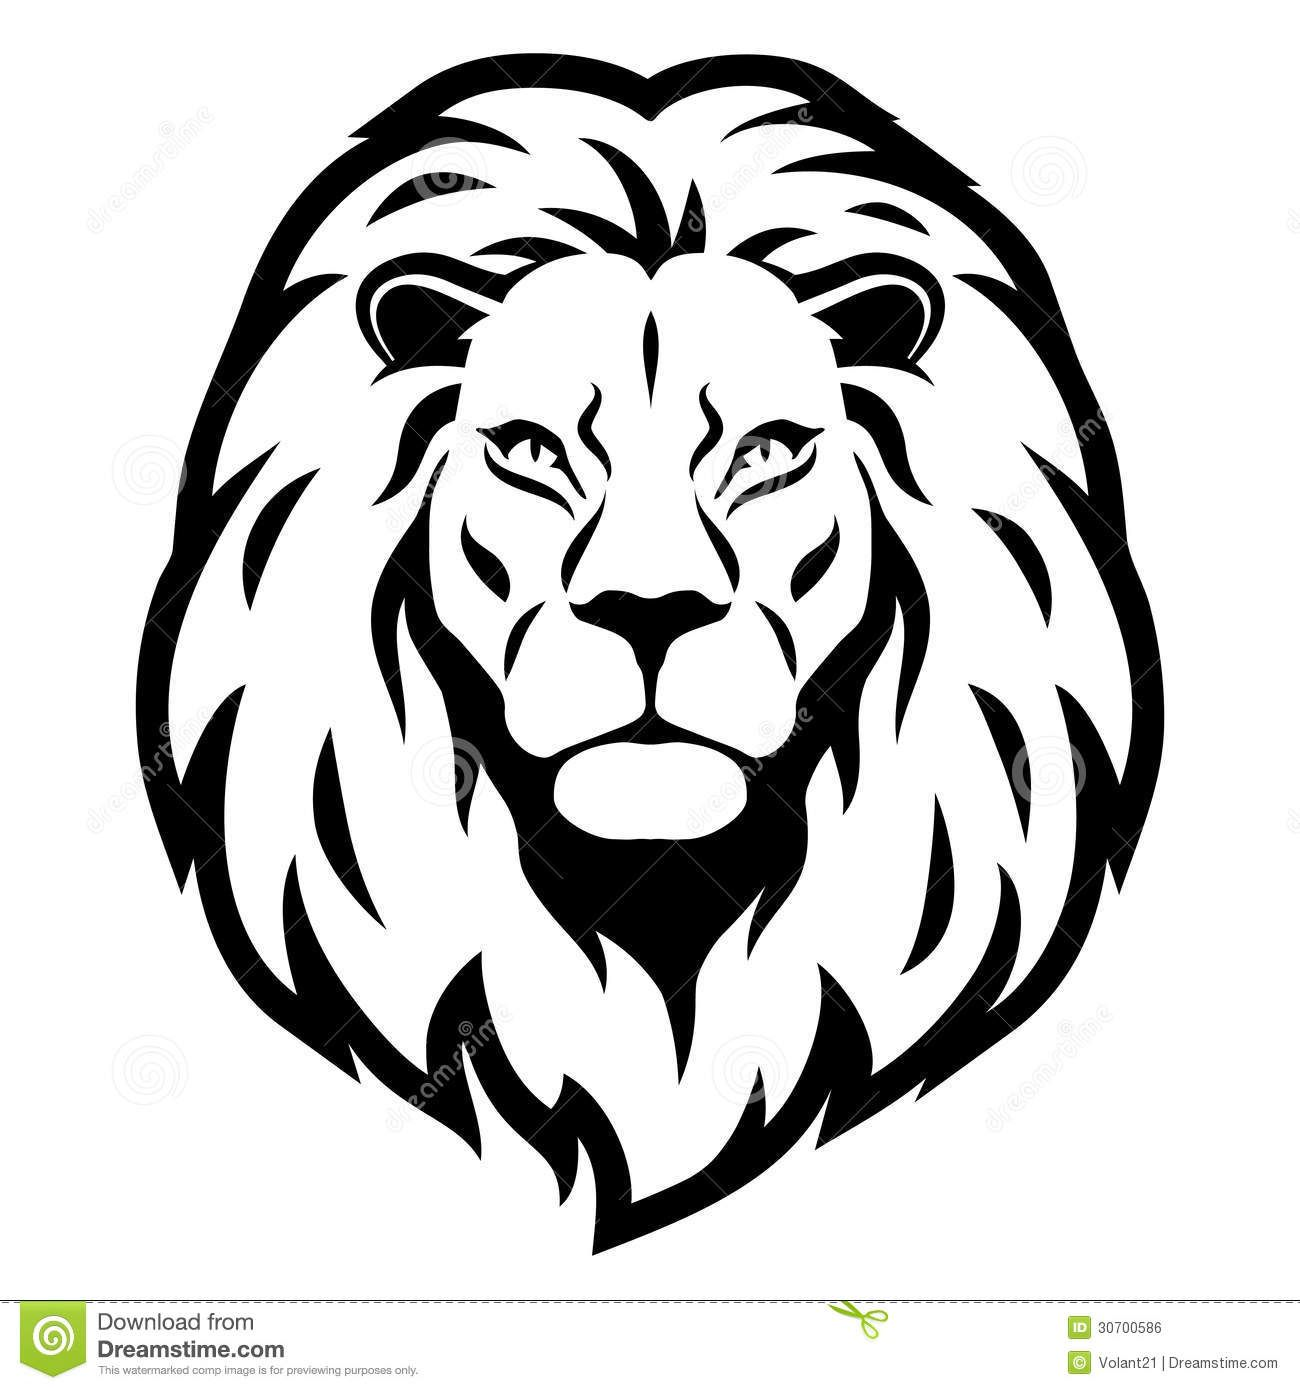 Lion drawing clipart png library lion king | pics. | Lion drawing, Lion face drawing, Lion head drawing png library